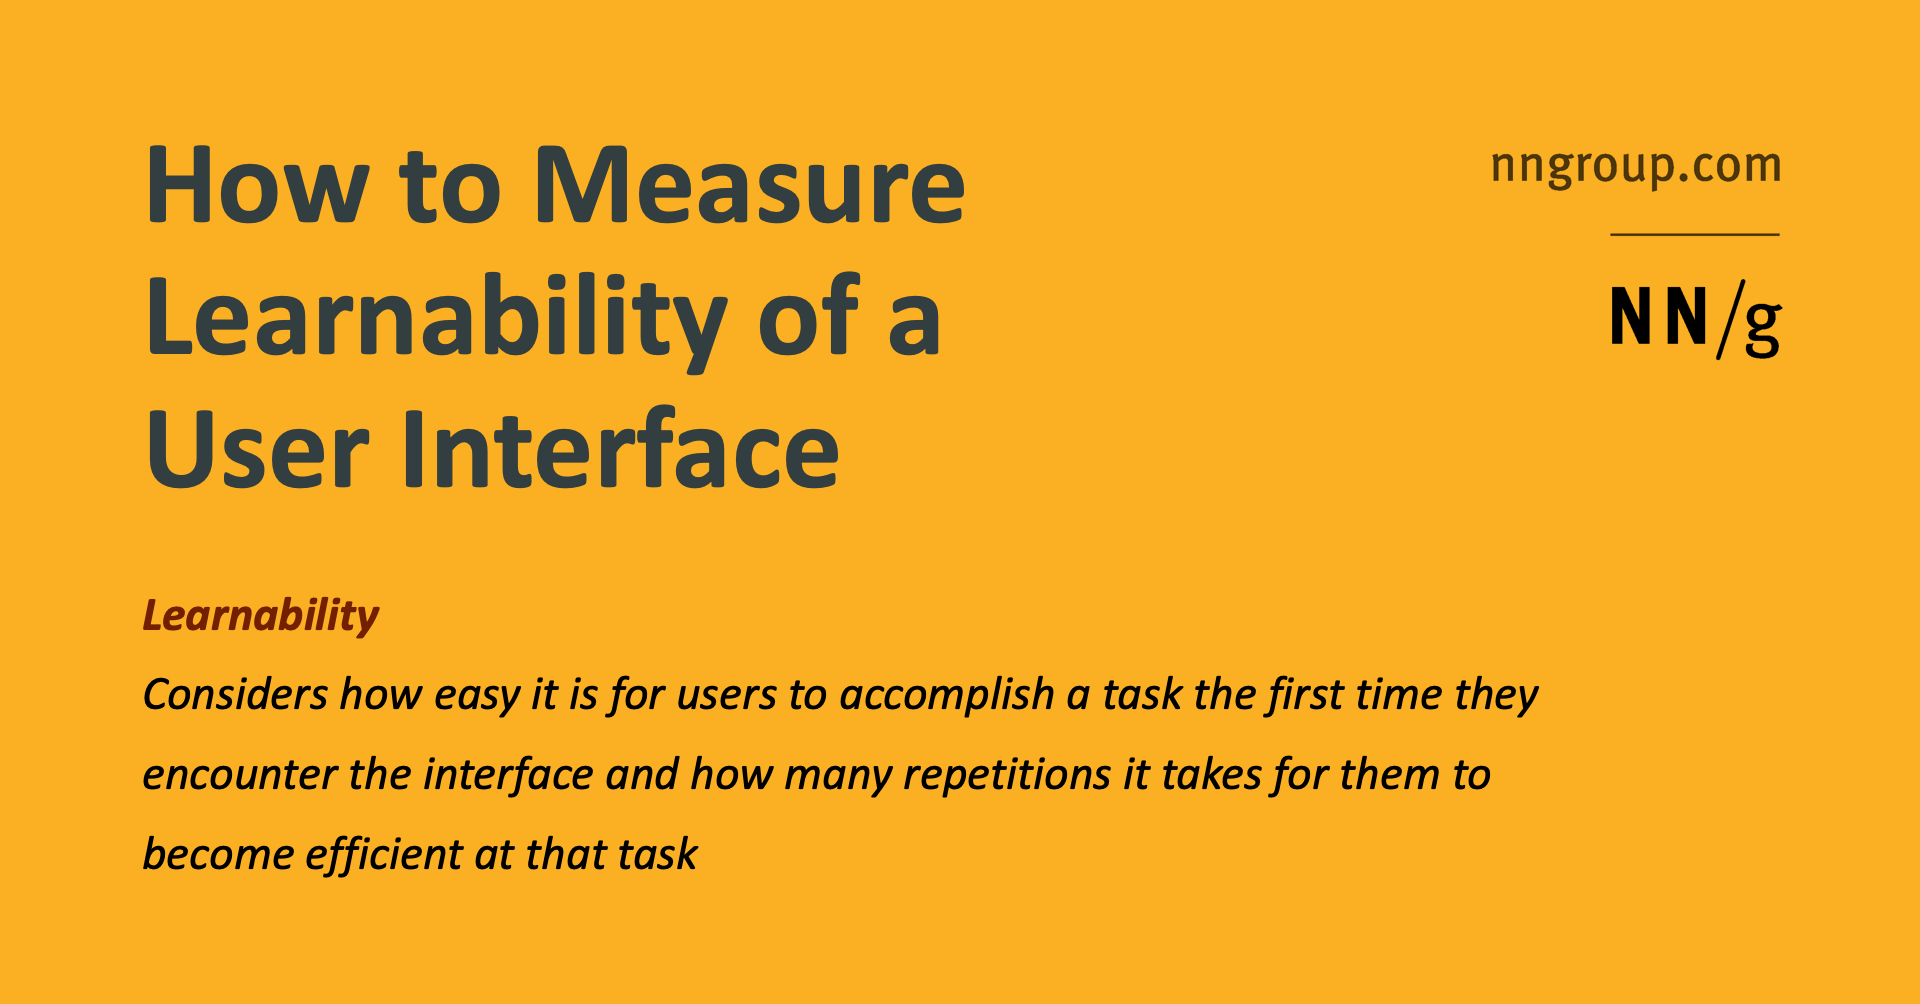 How To Measure Learnability Of A User Interface